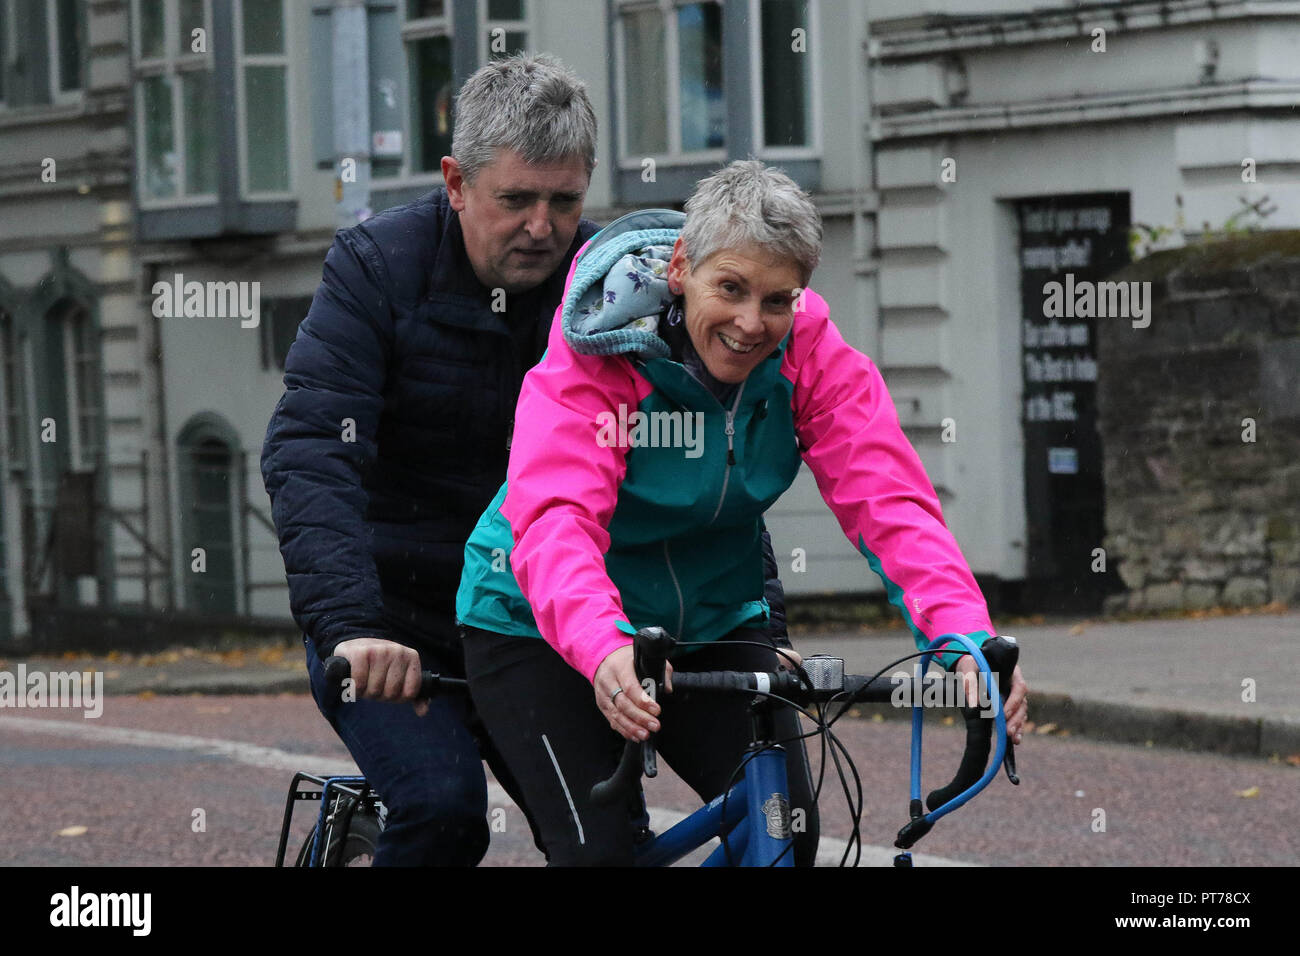 Belfast, Northern Ireland, UK. 07 October 2018. The fourth Ciclovia event was held in Belfast city centre this morning. The Health and Community based initiative is open to people of all ages and abilities and with the route closed to traffic the cyclists were able to ride through the traffic-free zone in the city centre. Credit: David Hunter/Alamy Live News. - Stock Image